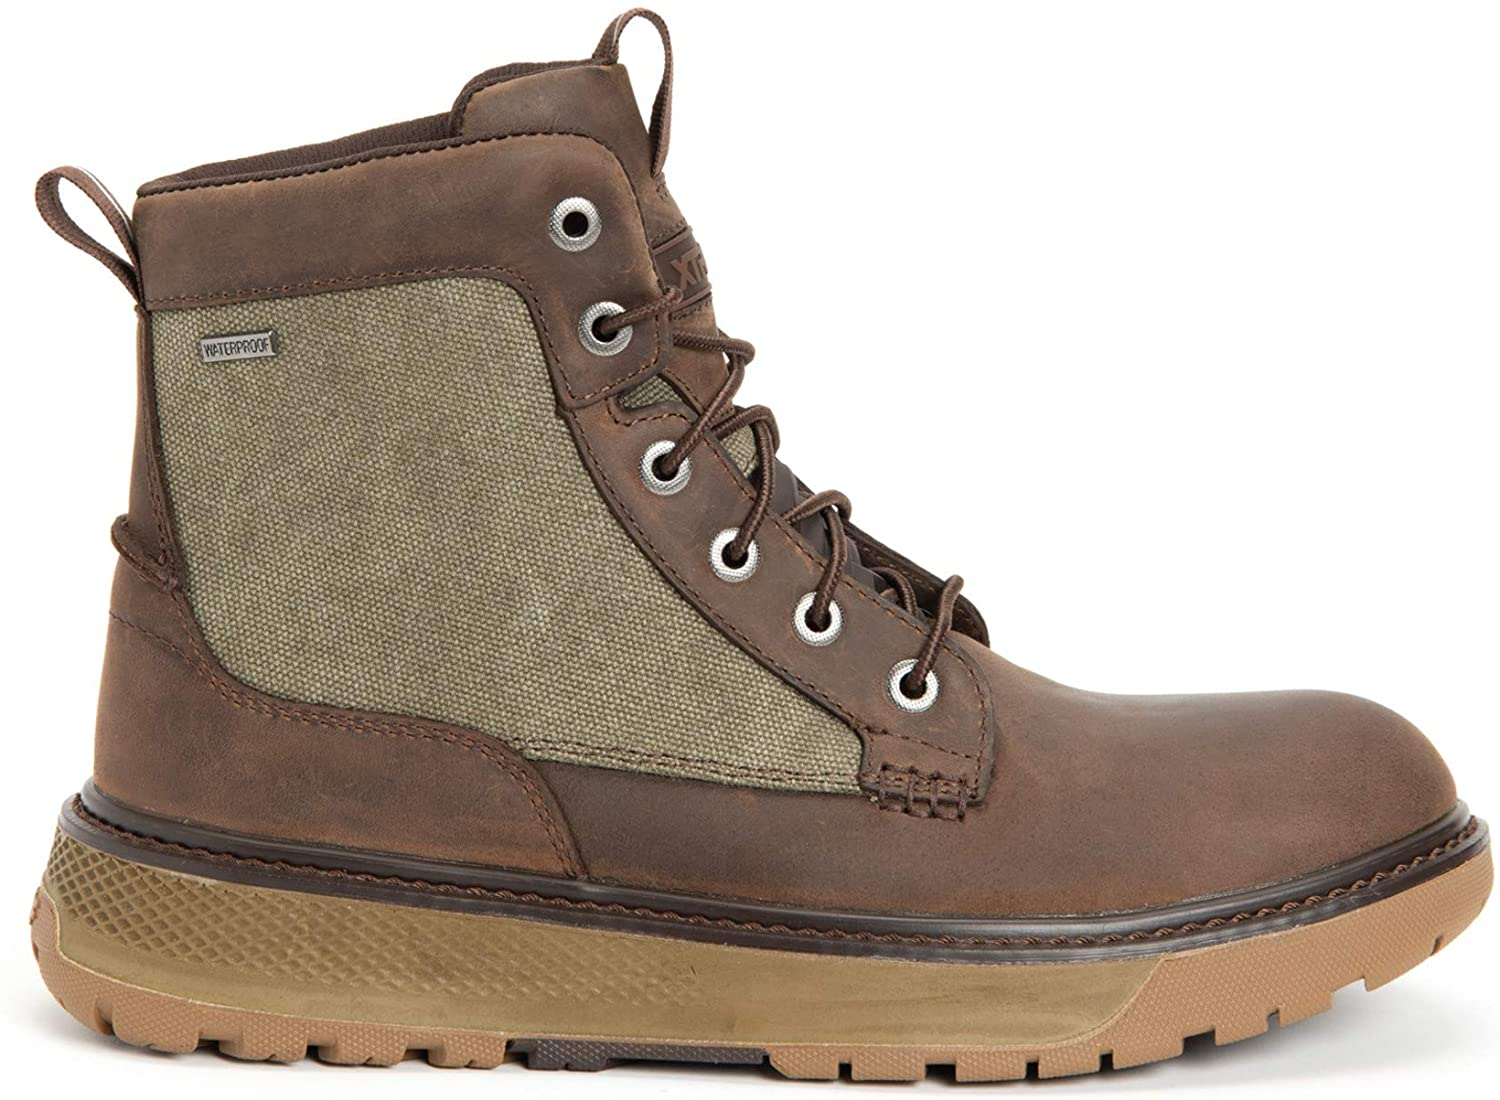 Men's Xtratuf Bristol Bay Work Boot in Brown/Green from the side